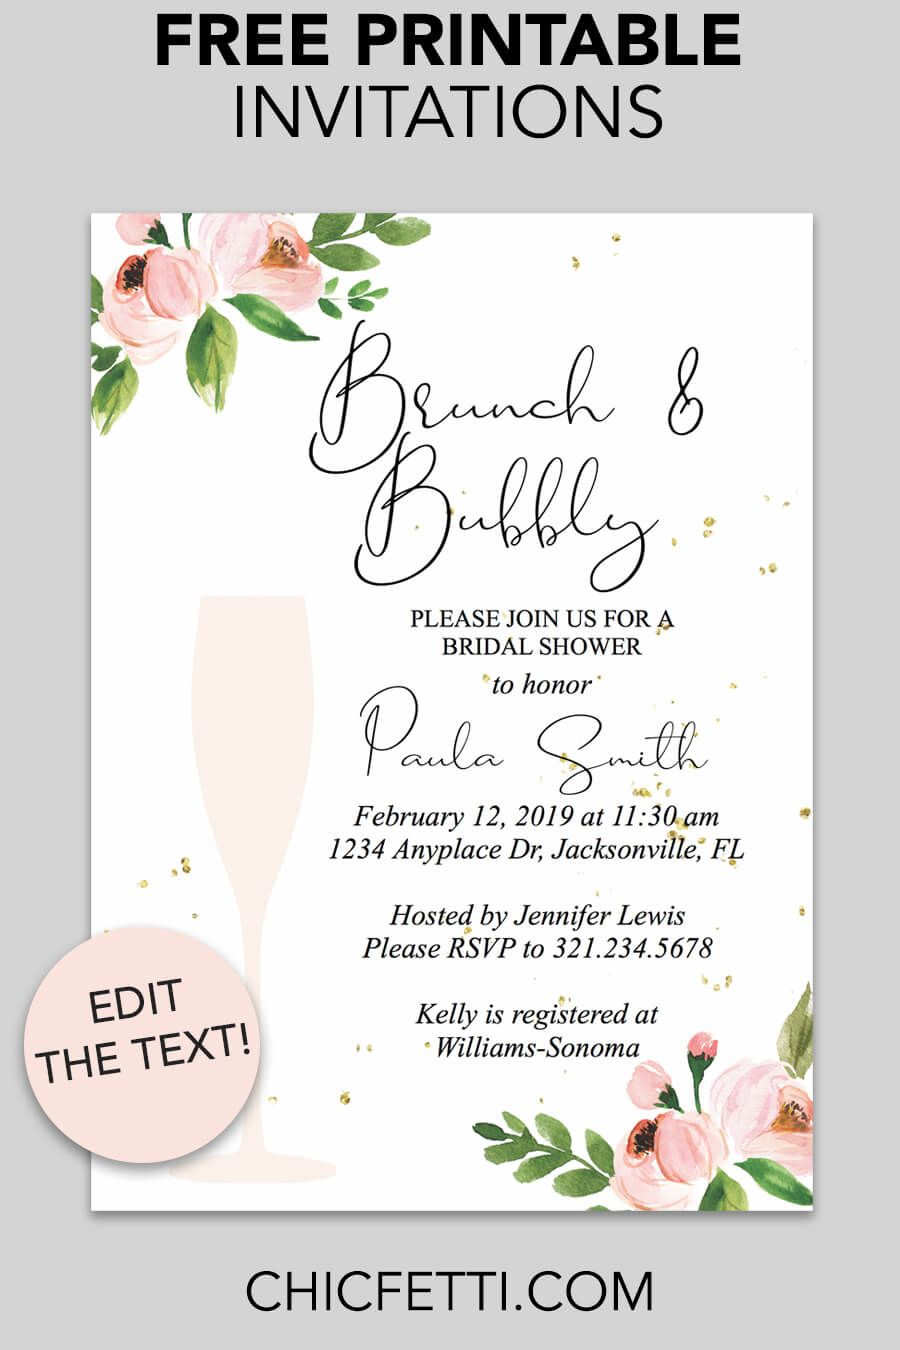 photo relating to Free Printable Wedding Shower Invitations identify Pin upon Invites - No cost Printable Invitation Templates